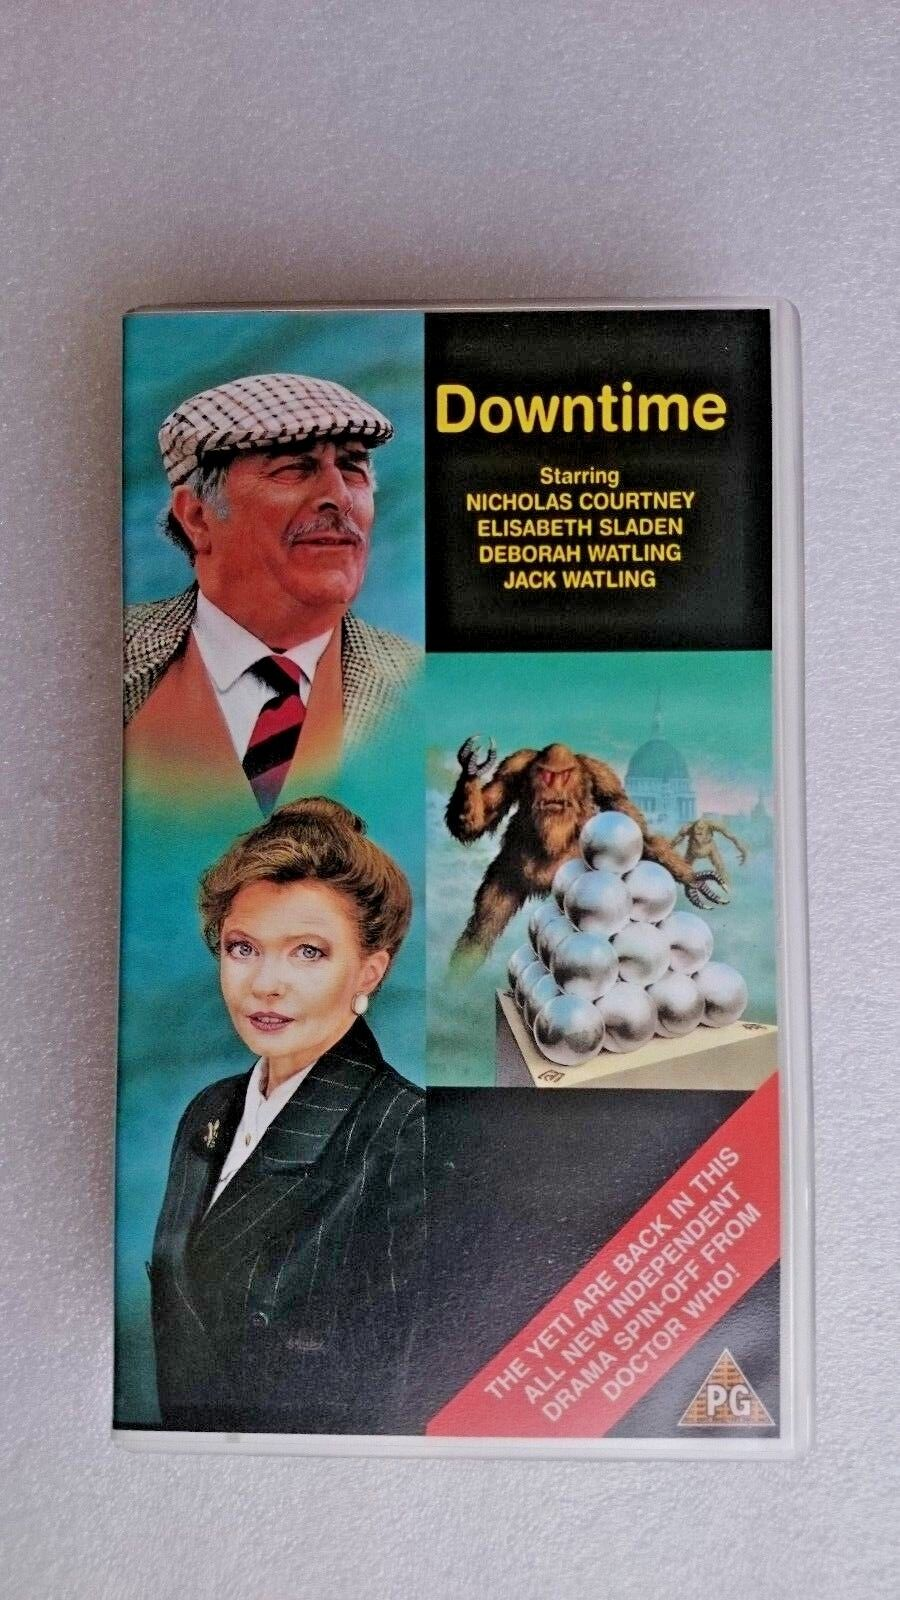 Downtime (VHS) - Nicholas Courtney